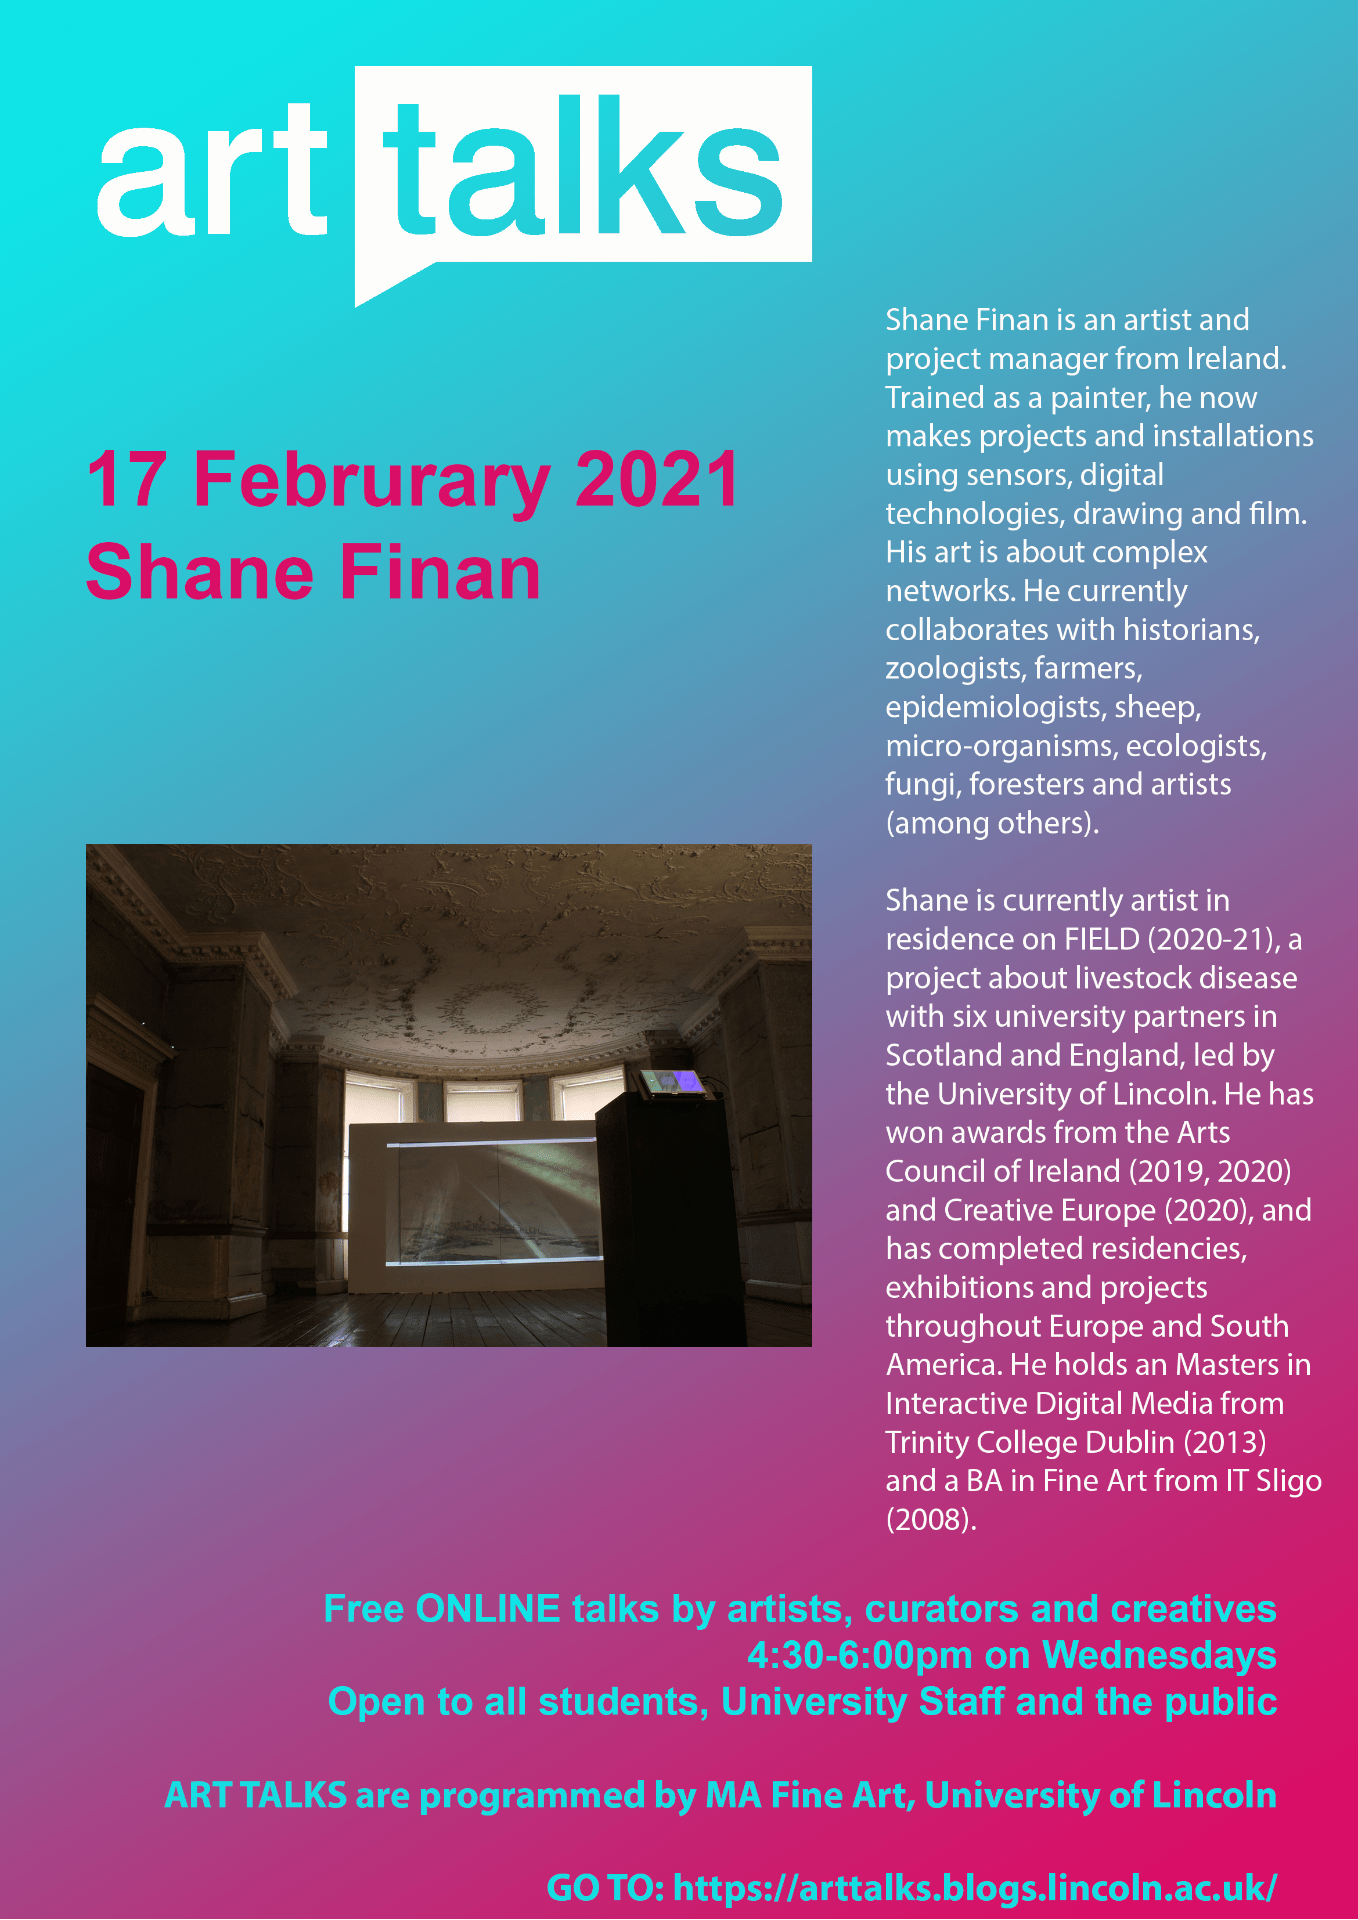 a poster with an art installation image on a garish pink and blue background, with some information about the artist shane finan